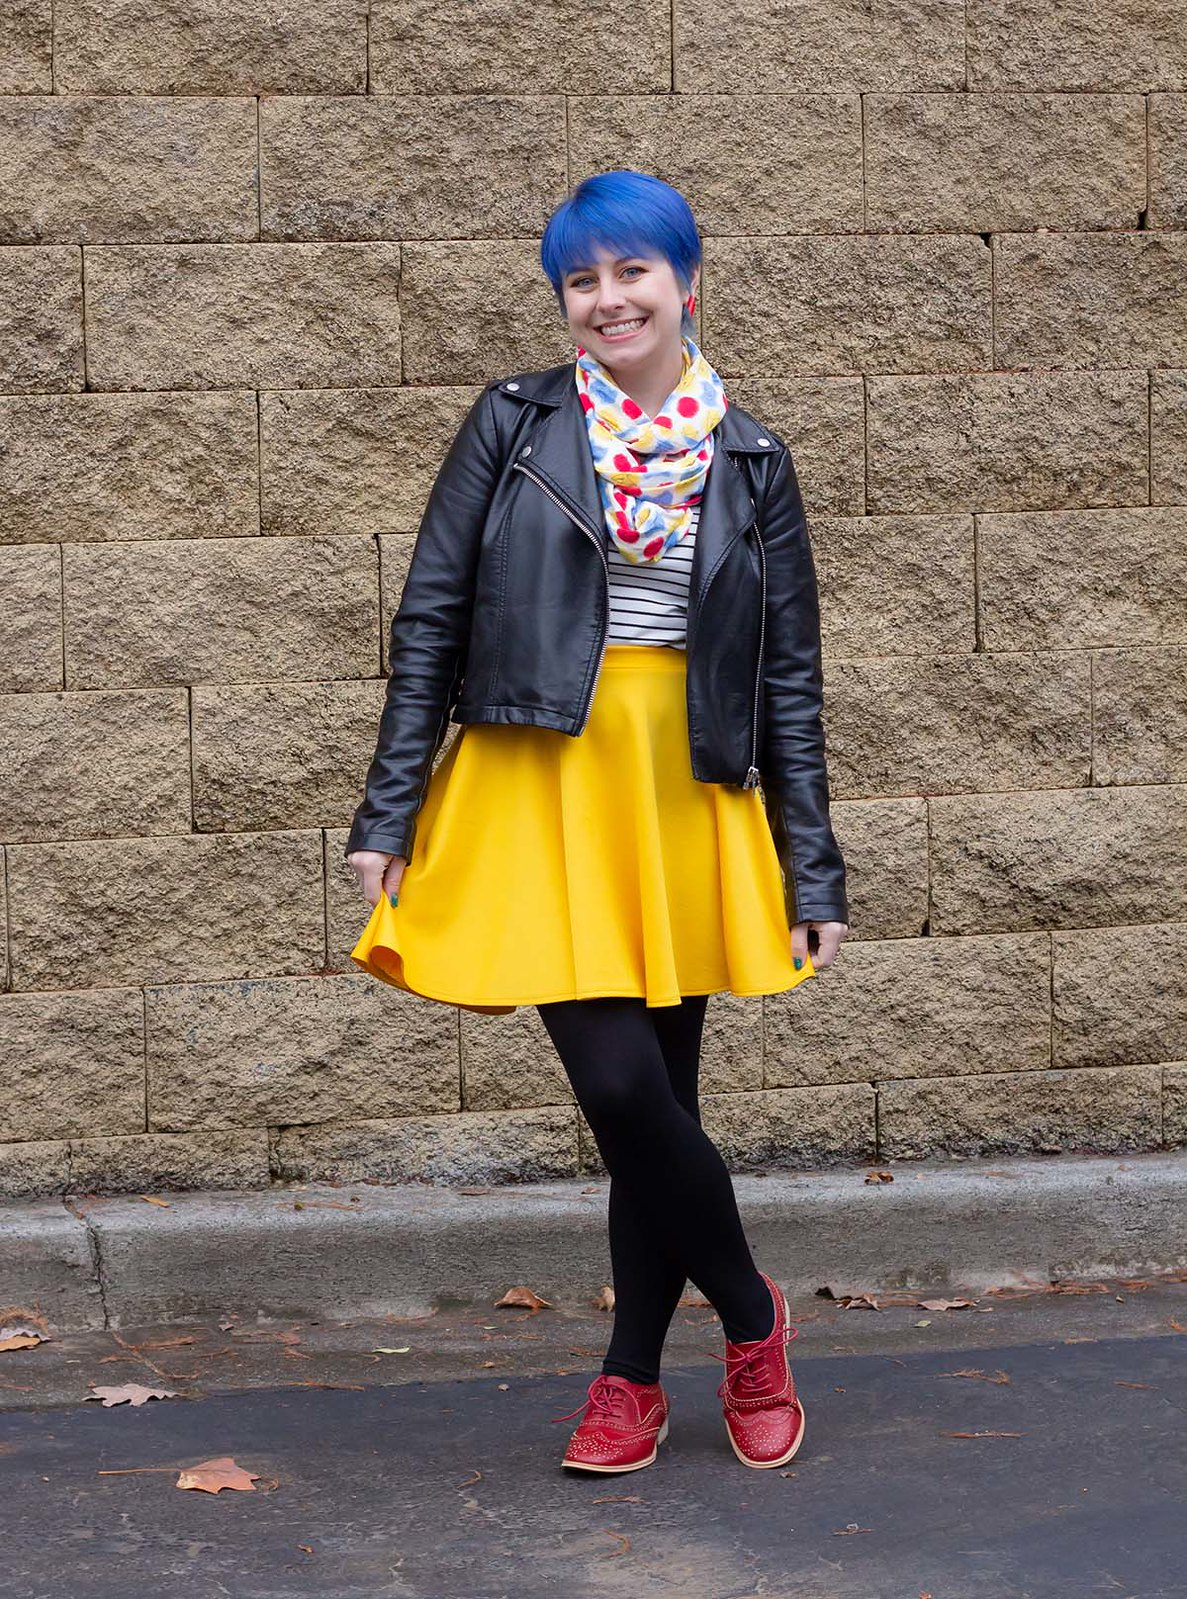 Faux Leather Jacket Outfit with Bright Yellow Skirt and Blue Hair